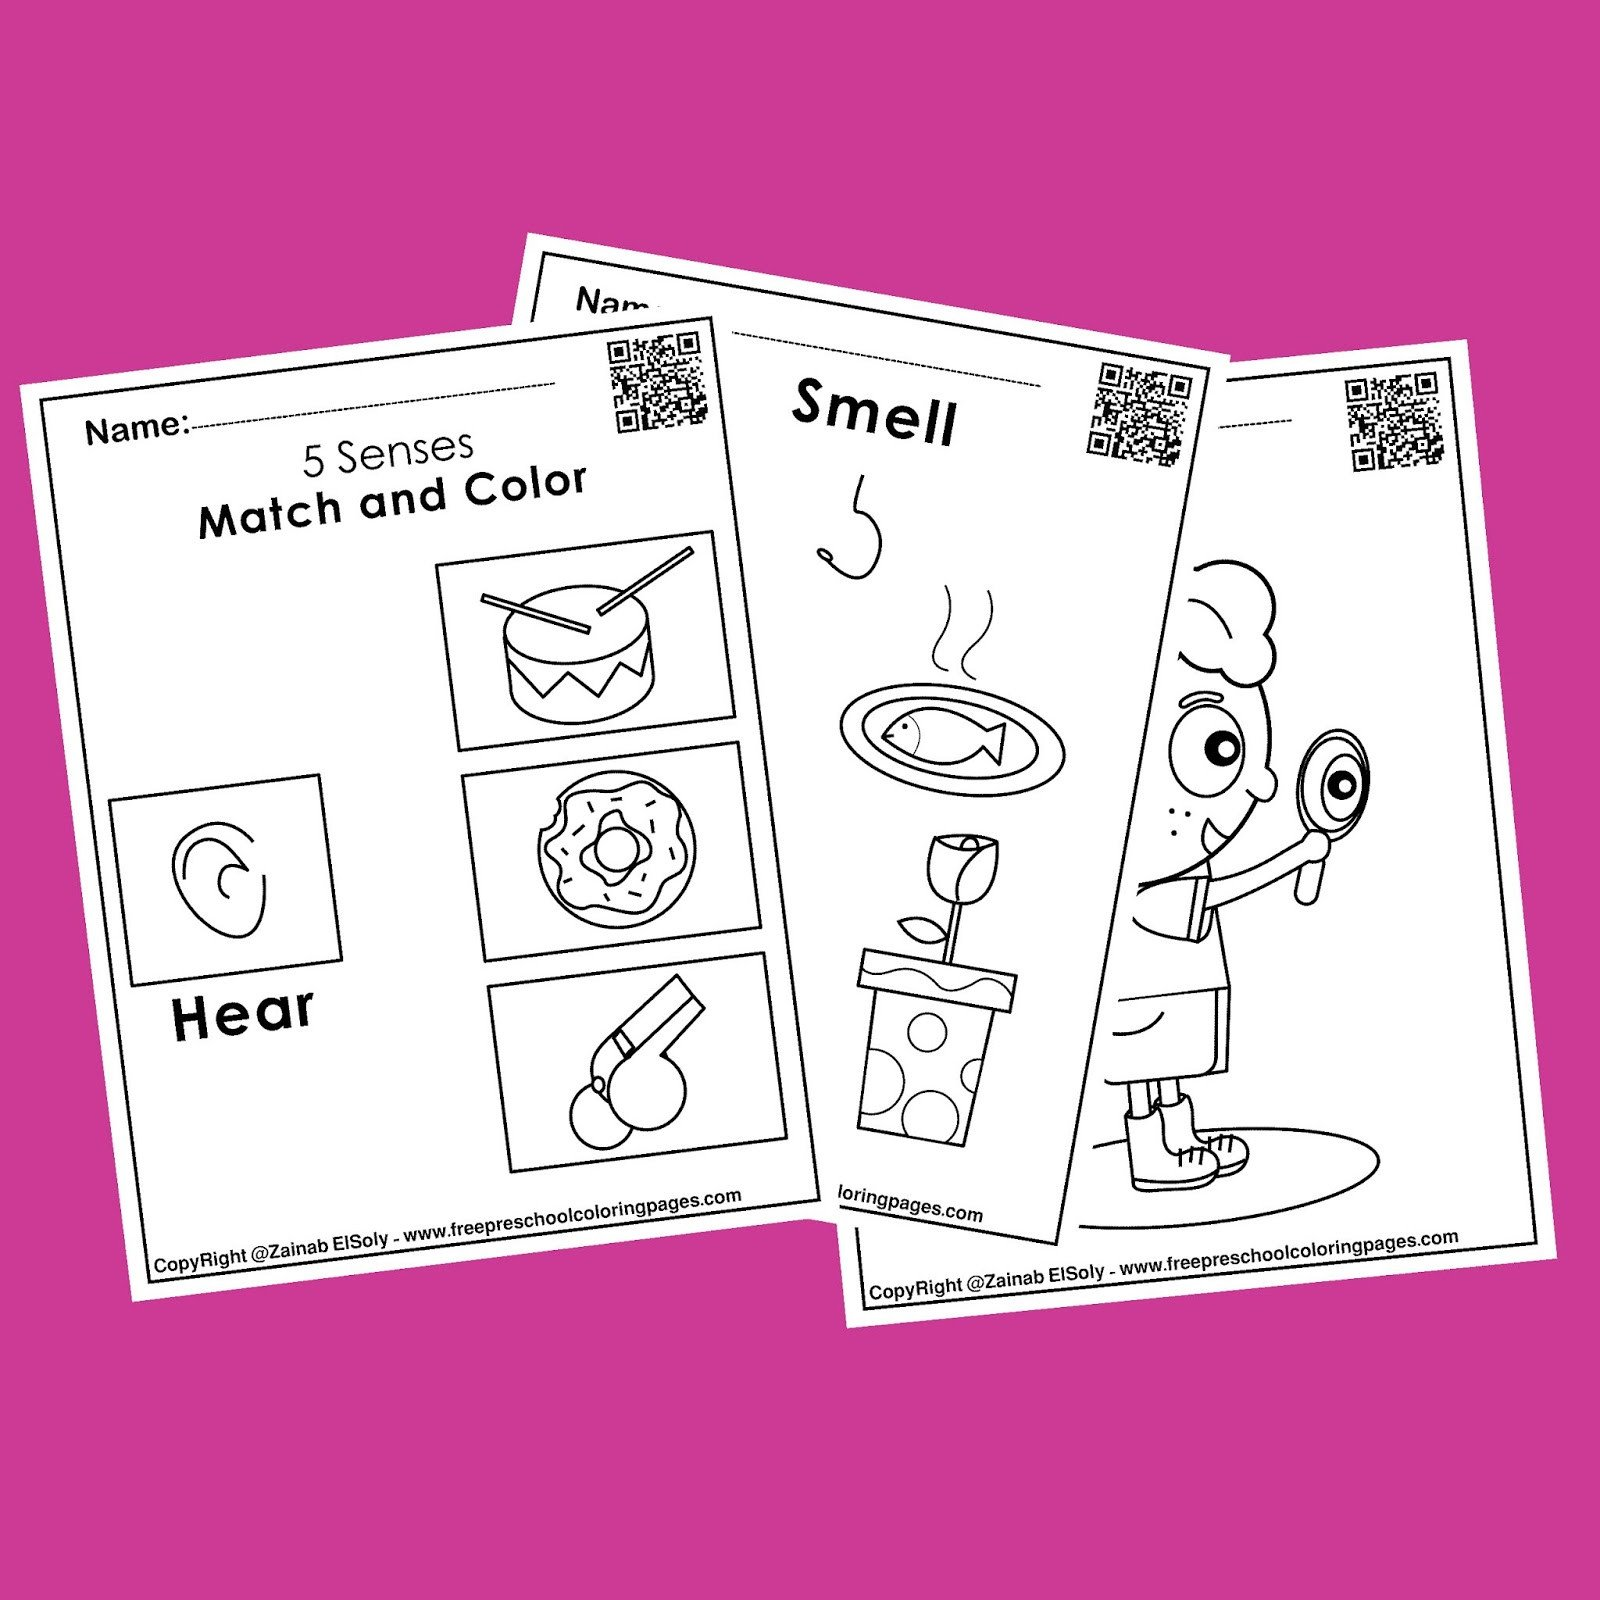 5 Senses Worksheet Preschool 5 Senses Free Worksheets Activities for Kids